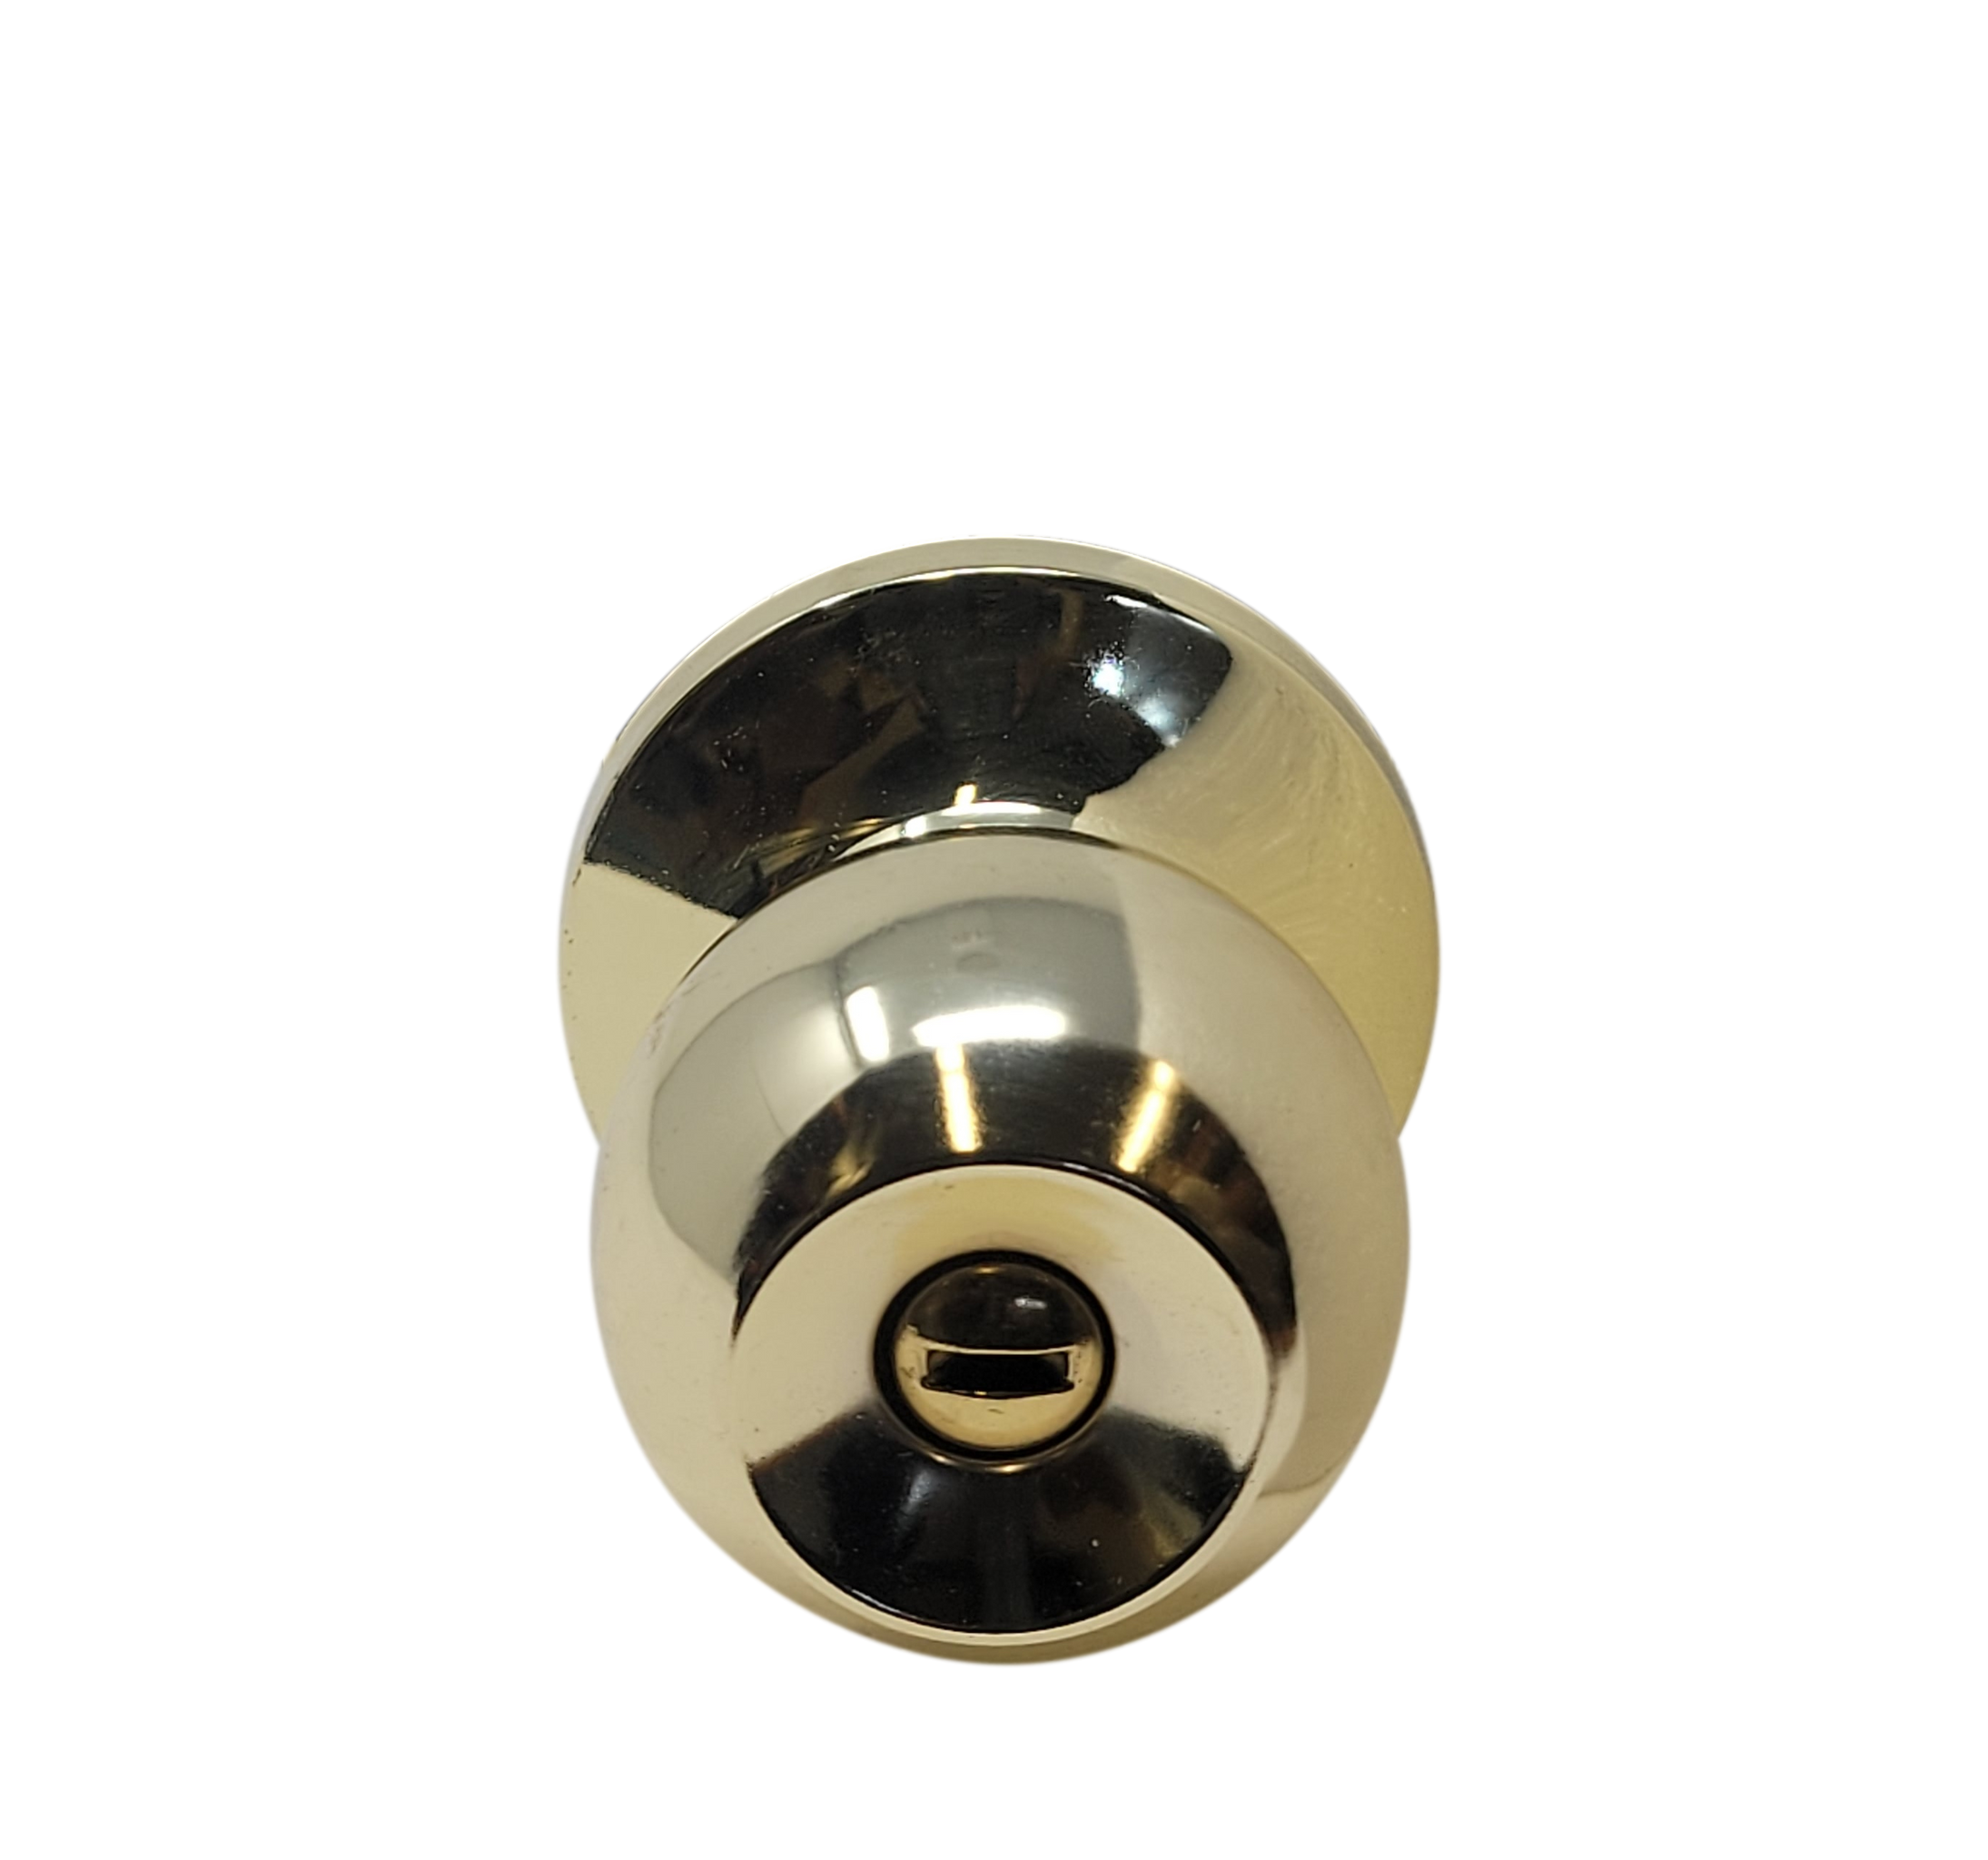 Consavvy Door Lock, Door knob - Polished Brass (Gold) - Entry with Key/Privacy no Key/Passage no Key